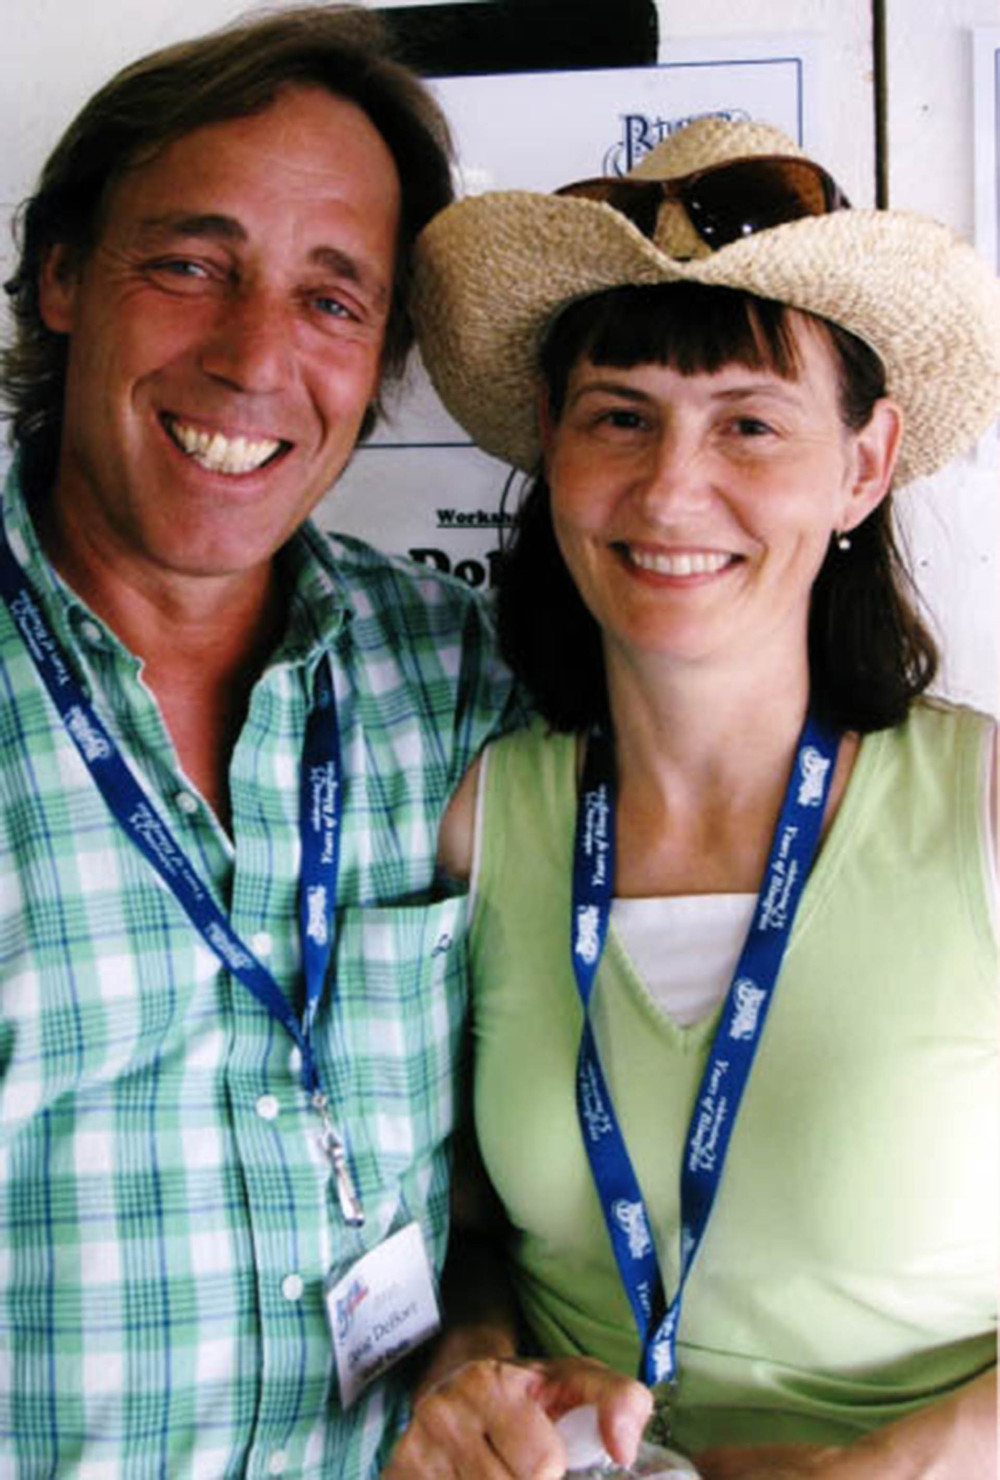 2010 - Doug DeBoer of Hard Ryde with Blueberry treasurer Sheila Hallett